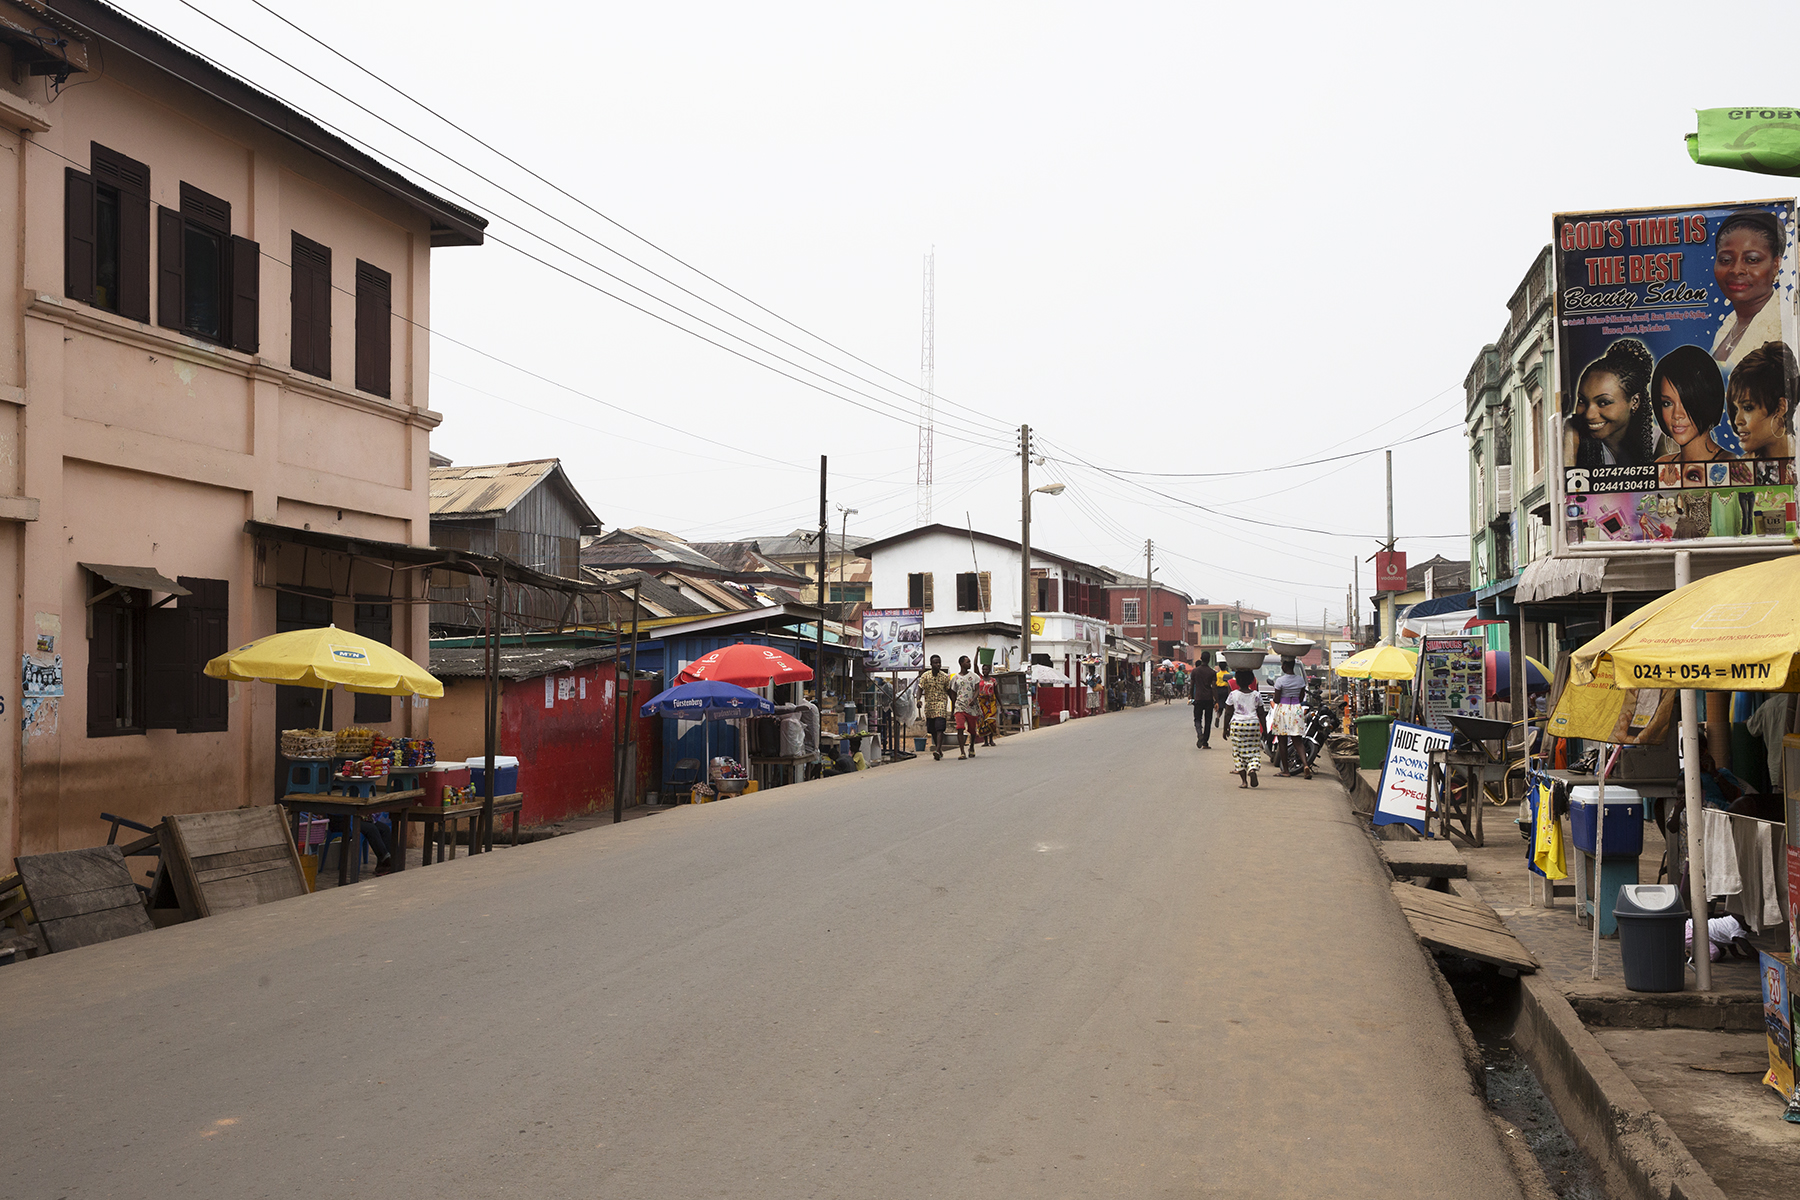 A street view of Elmina, as we walked from the castle towards the tro tro station